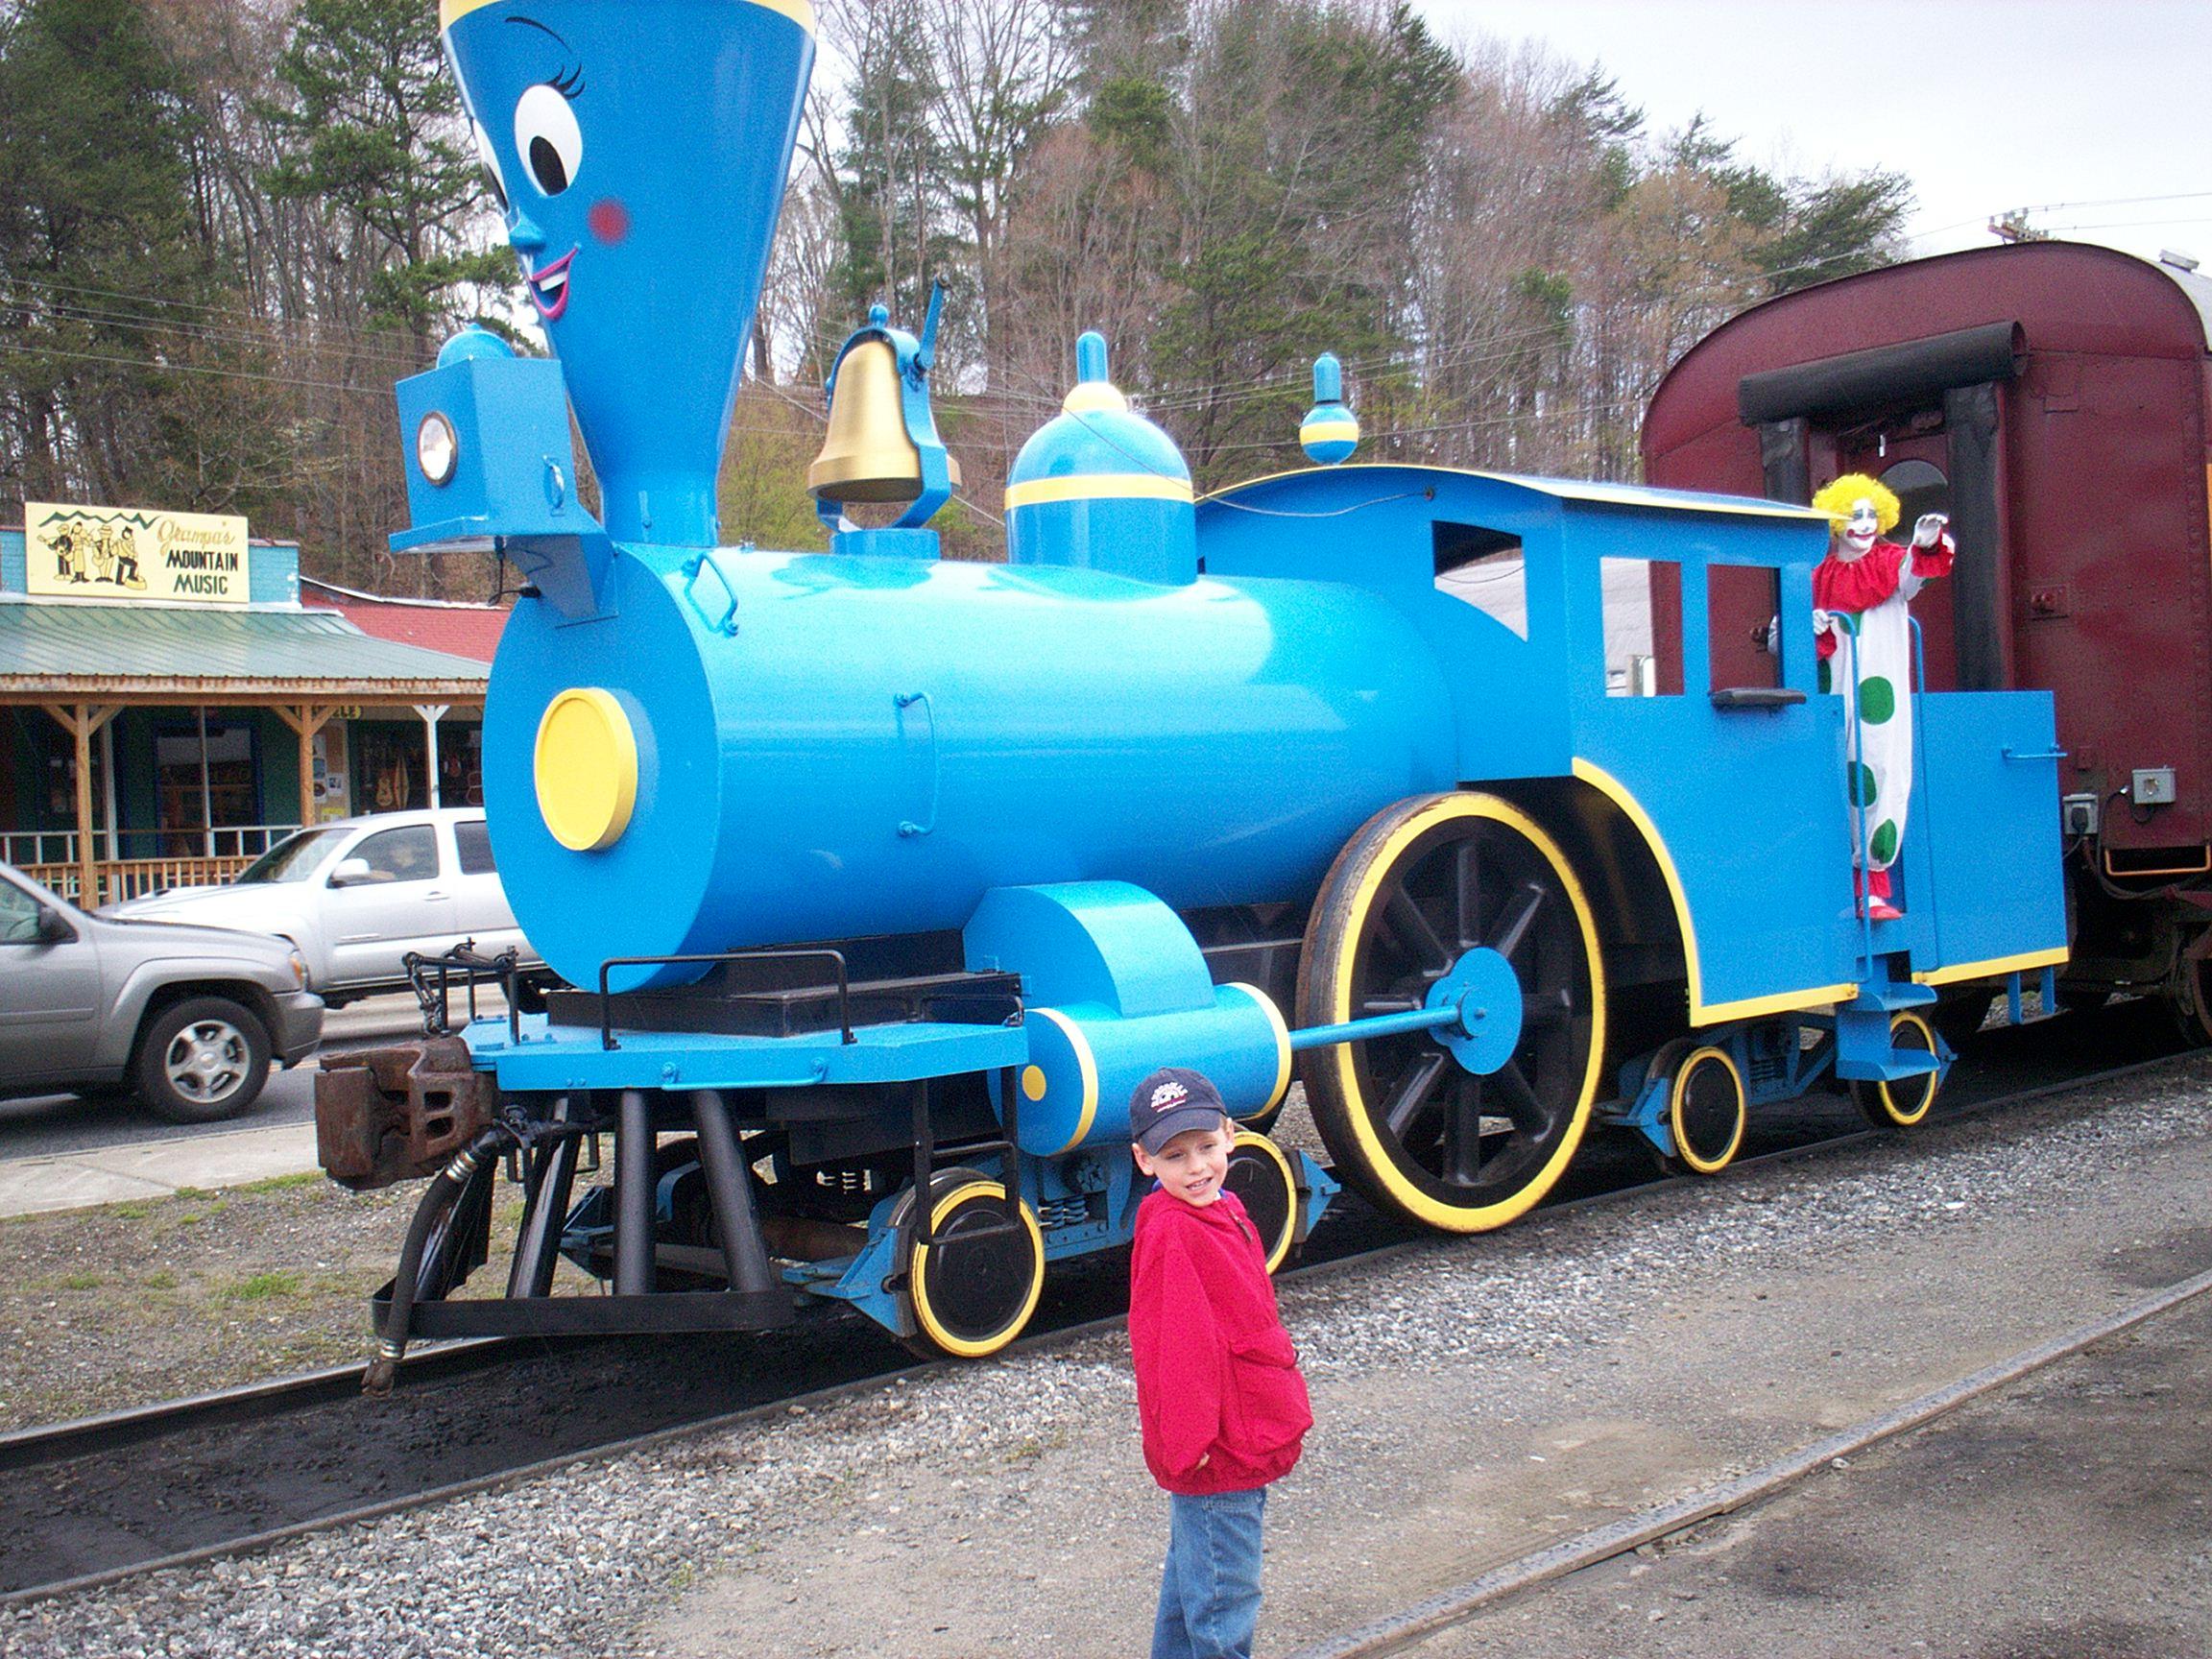 The Little Engine Th